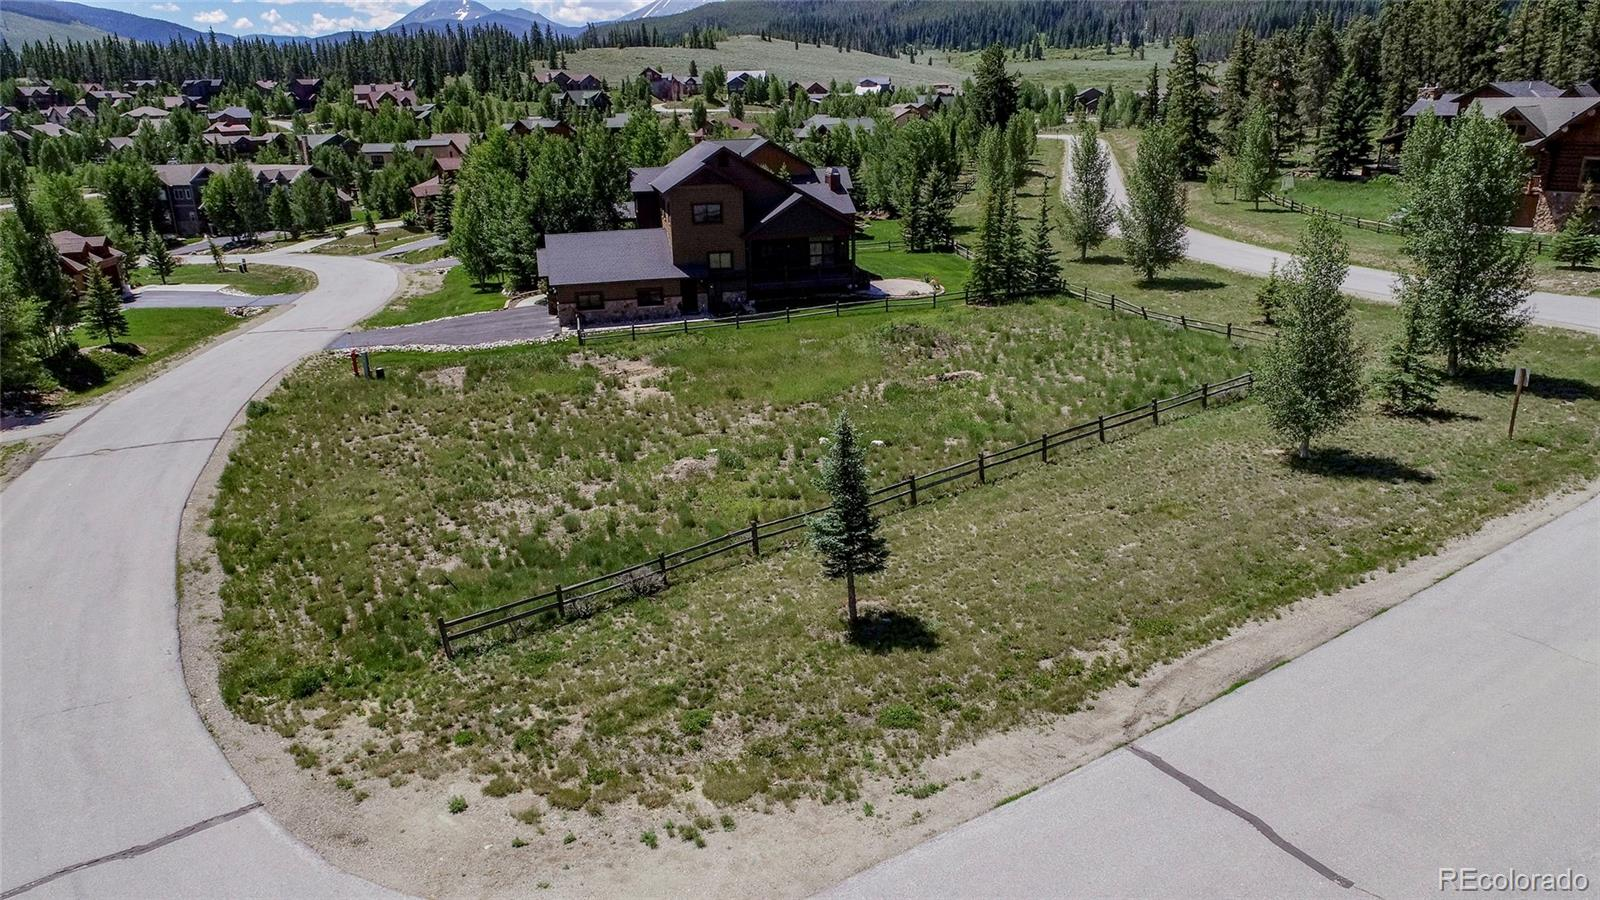 Beautiful easy build lot in great location in Summit Cove. Views in several directions and across the street from Whispering Pines Park. All the hard work done-soils report, survey, engineered drawings and more. Water tap fee in place-$9500 value! Great opportunity.